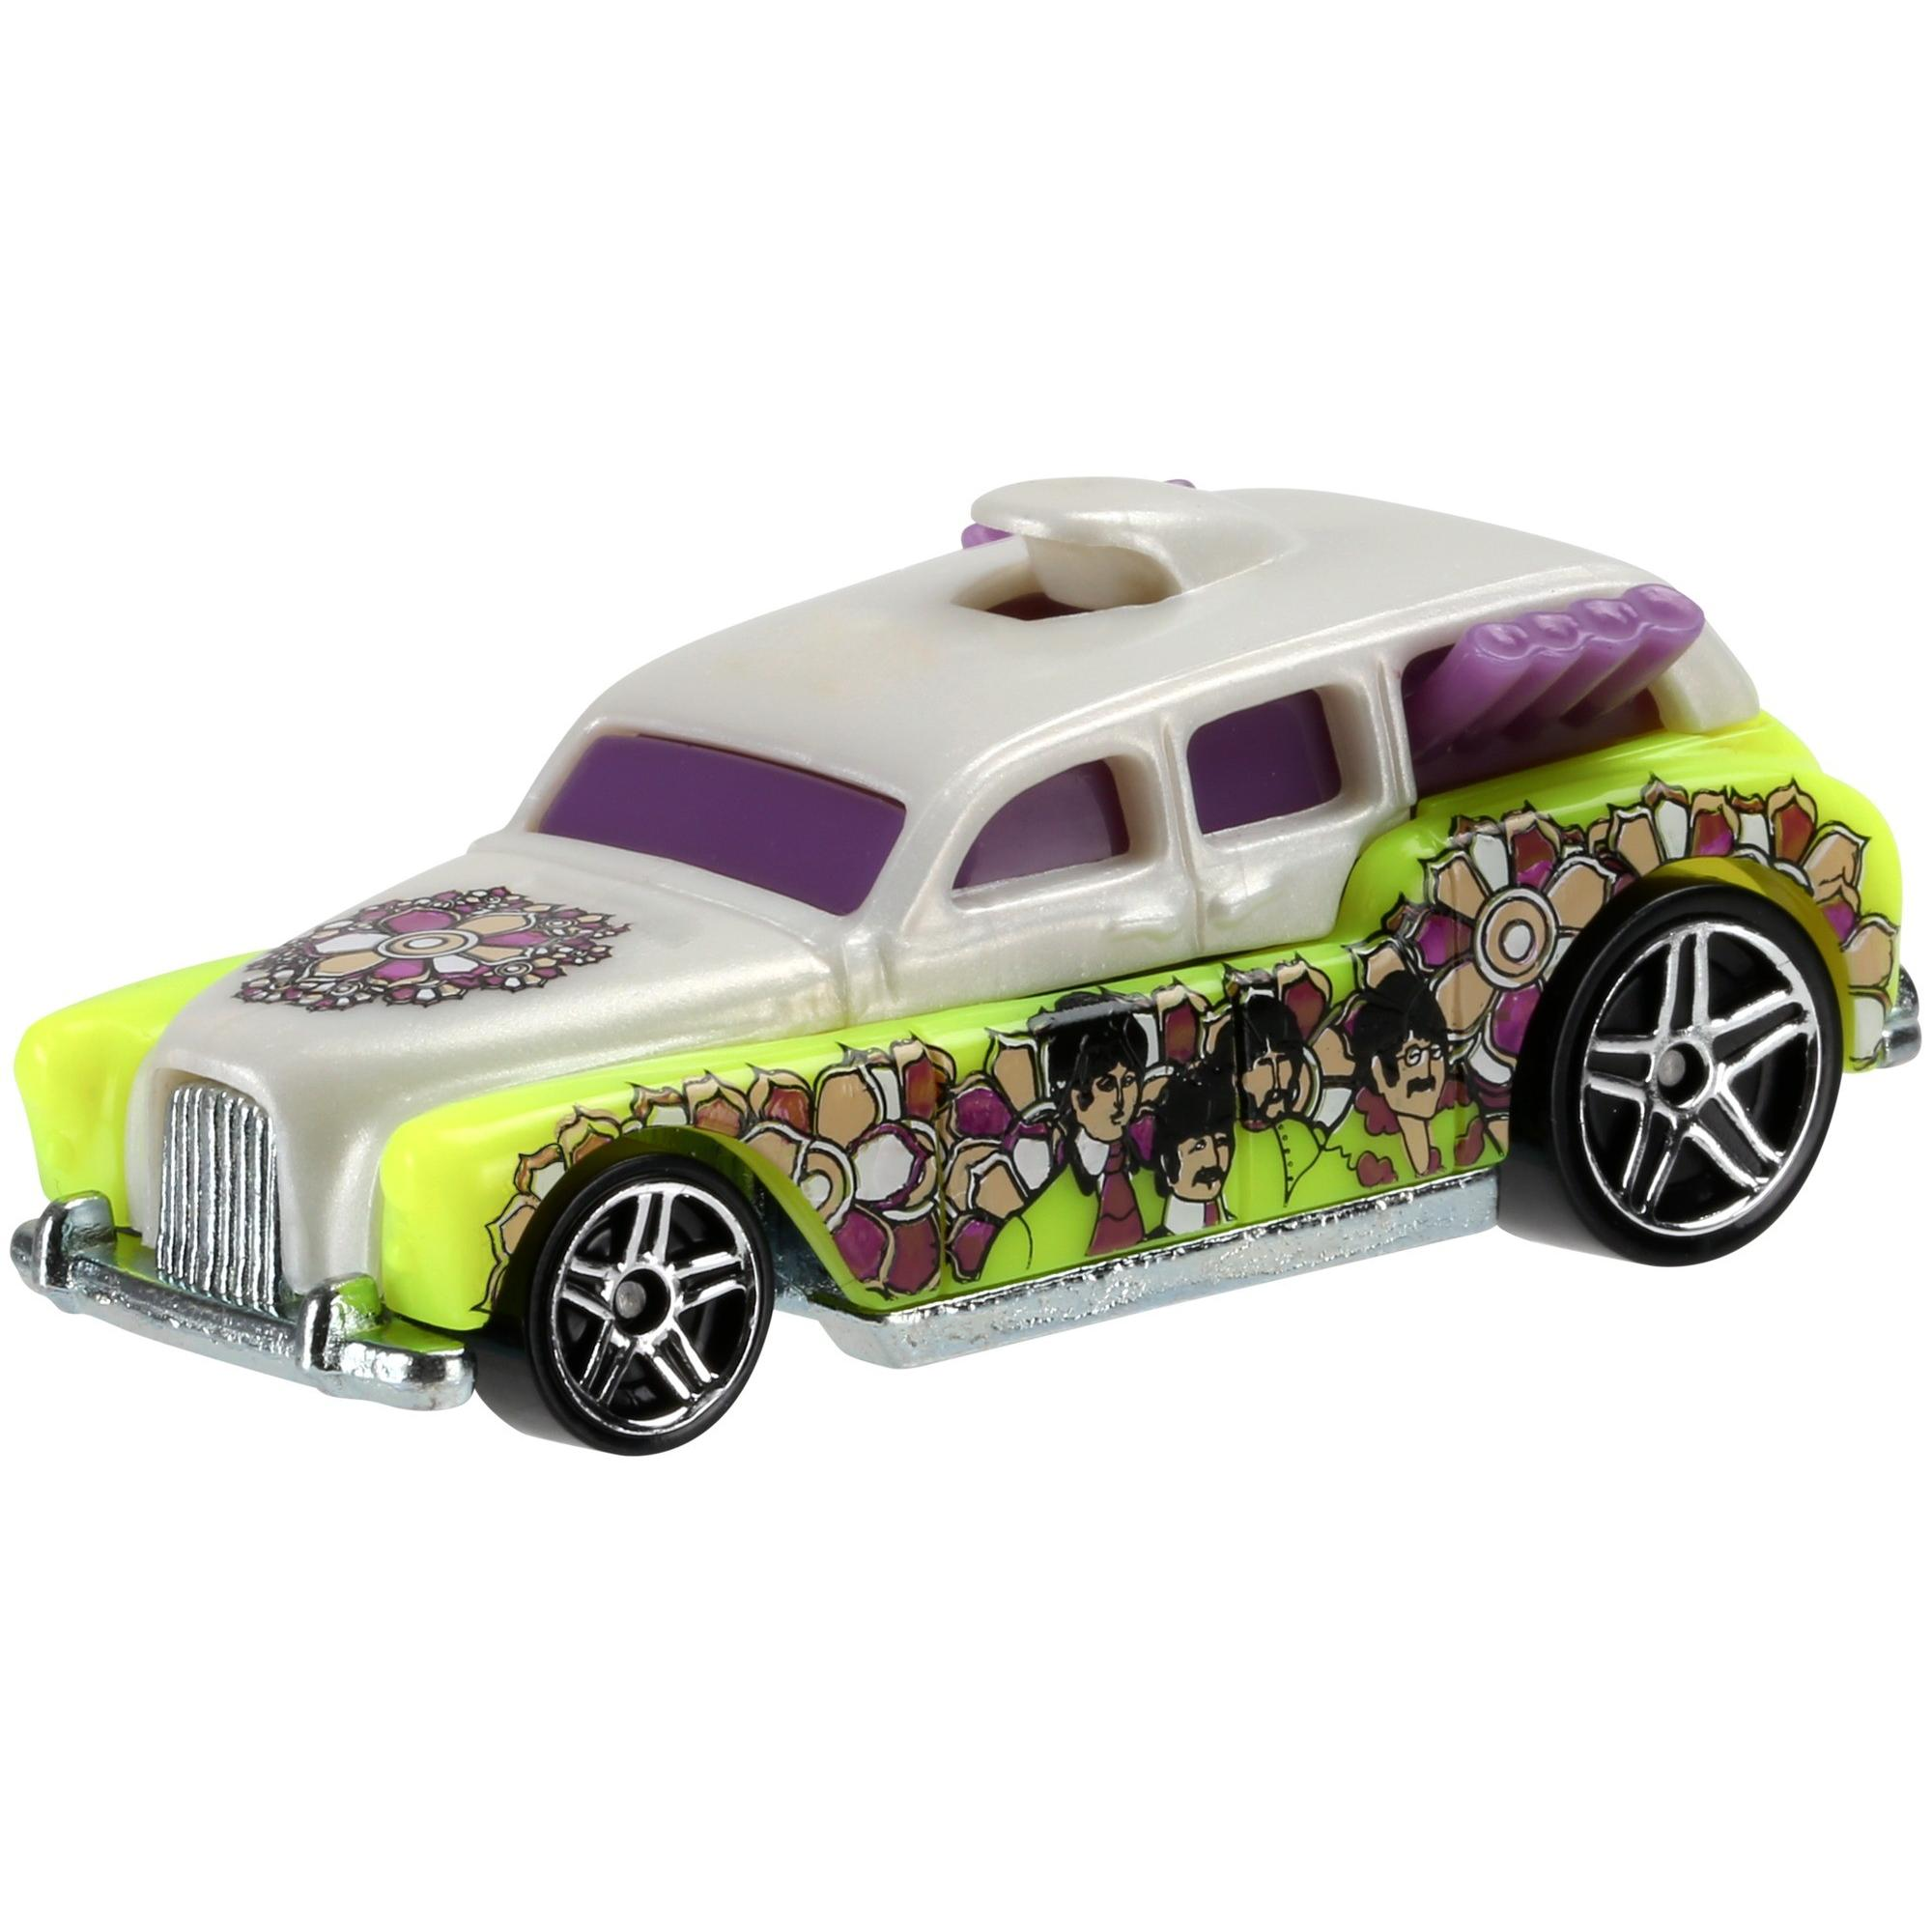 Hot Wheels Beatles Yellow Submarine Collection (Styles May Vary) by Mattel